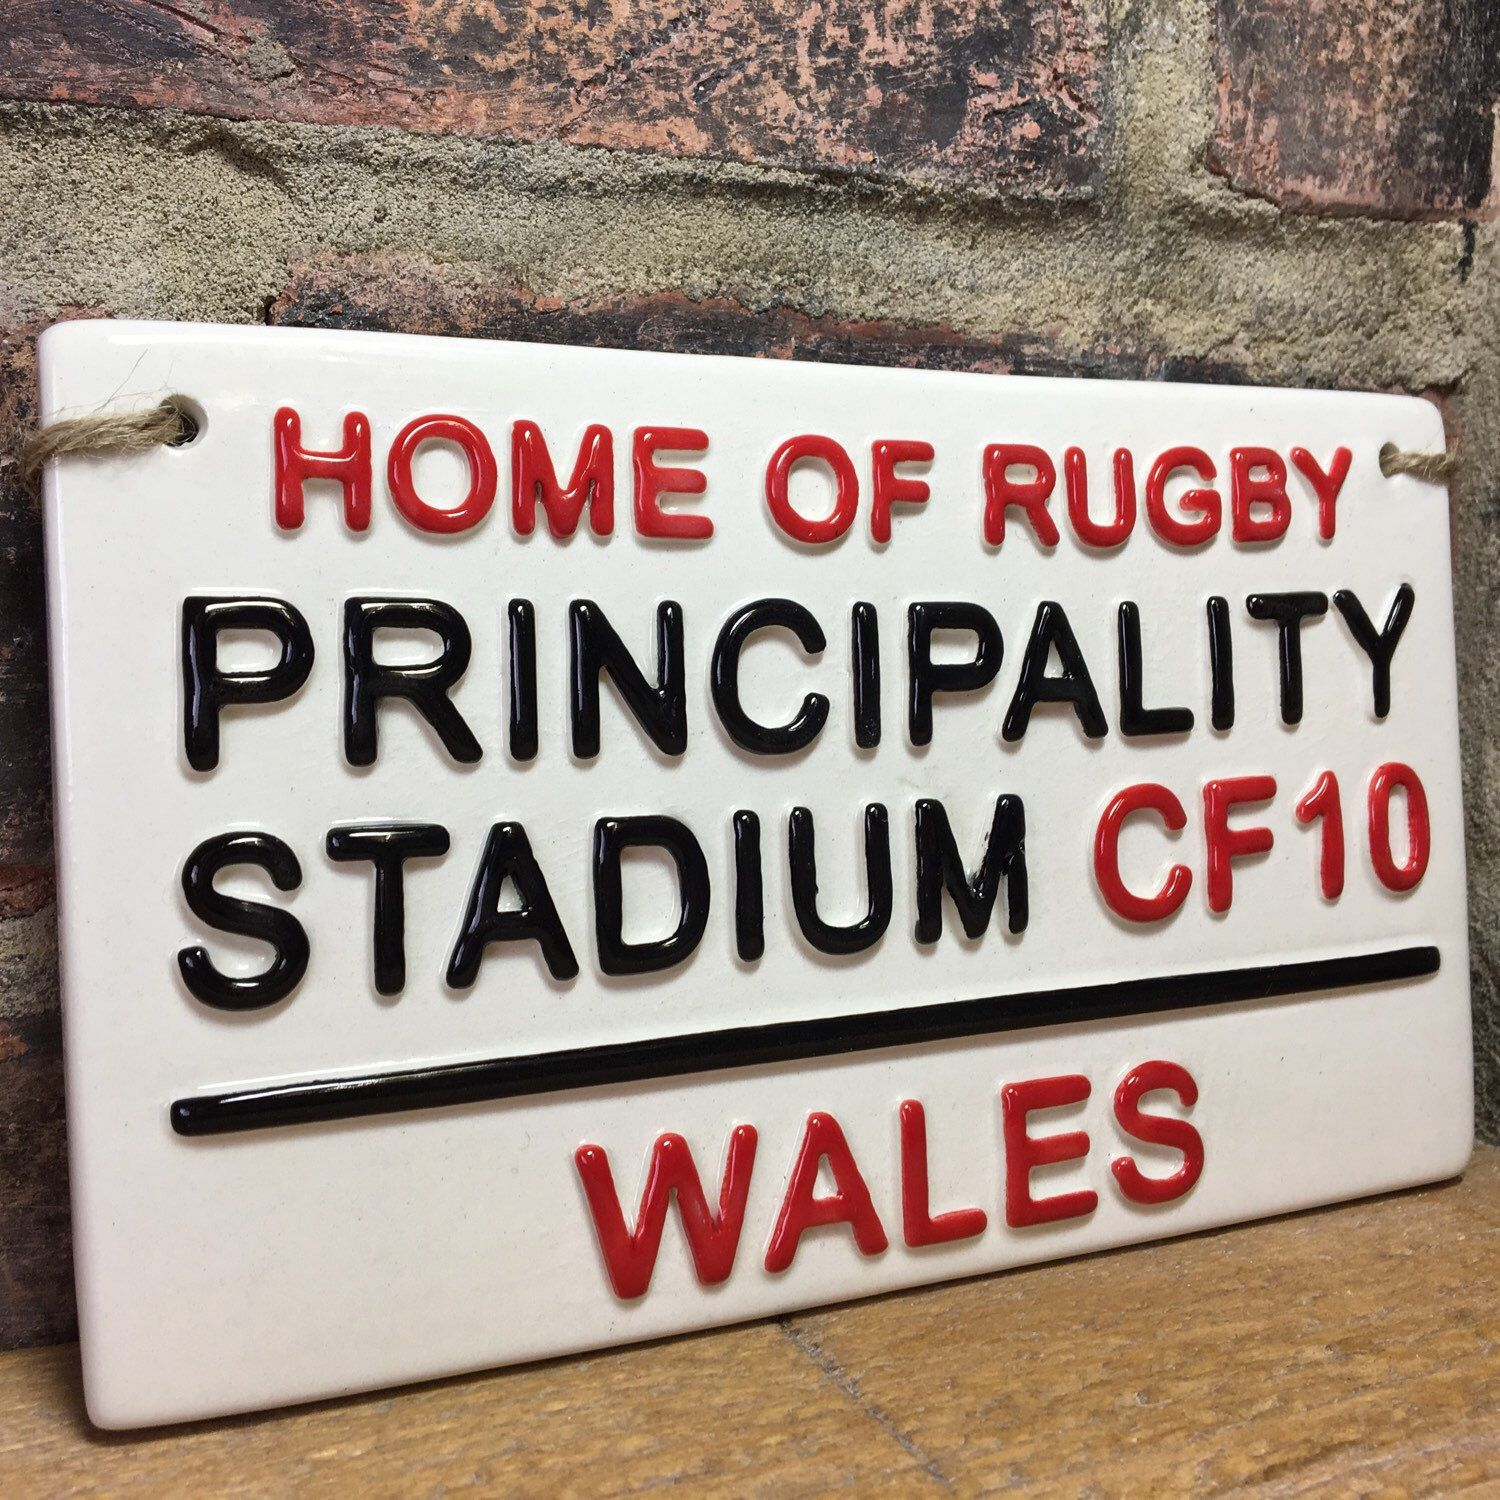 Principality Stadium Home Of Rugby Wales Rugby Street Sign Rugby Gift Rugby Union Sports Plaque Fathers Day Gift England Rugby Gifts For Him Pottery Kiln Street Signs Earthenware Clay